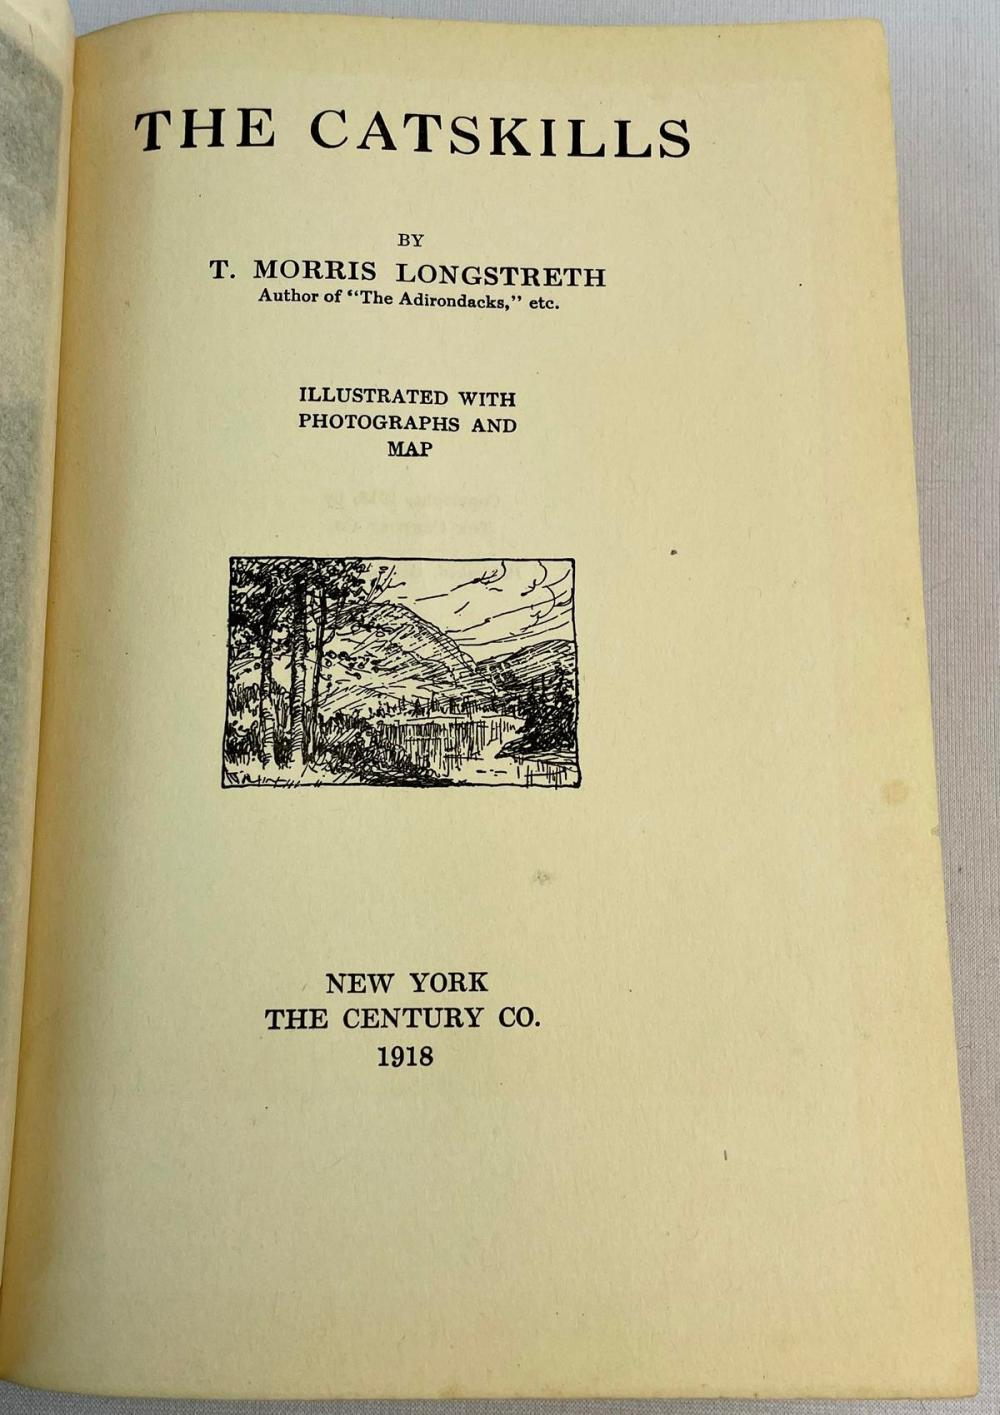 1918 The Catskills by T. Morris Longstreth Illustrated FIRST EDITION